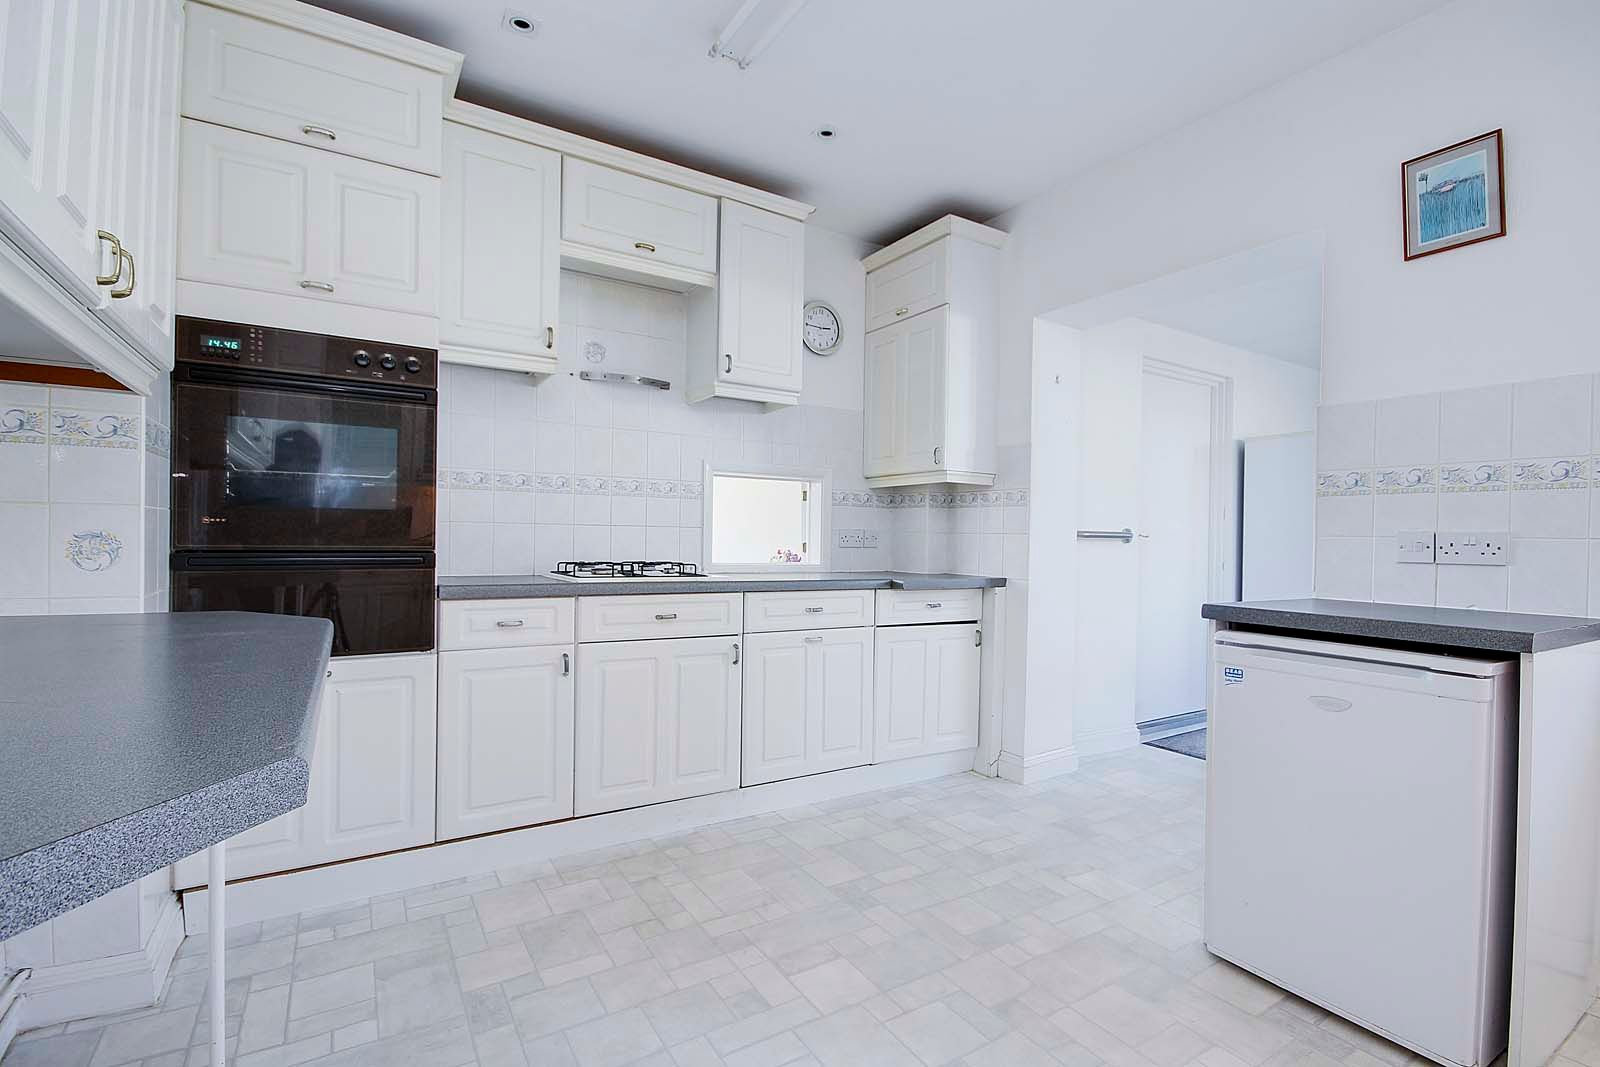 3 bed bungalow for sale in Sea Lane COMP MAY 19  - Property Image 6